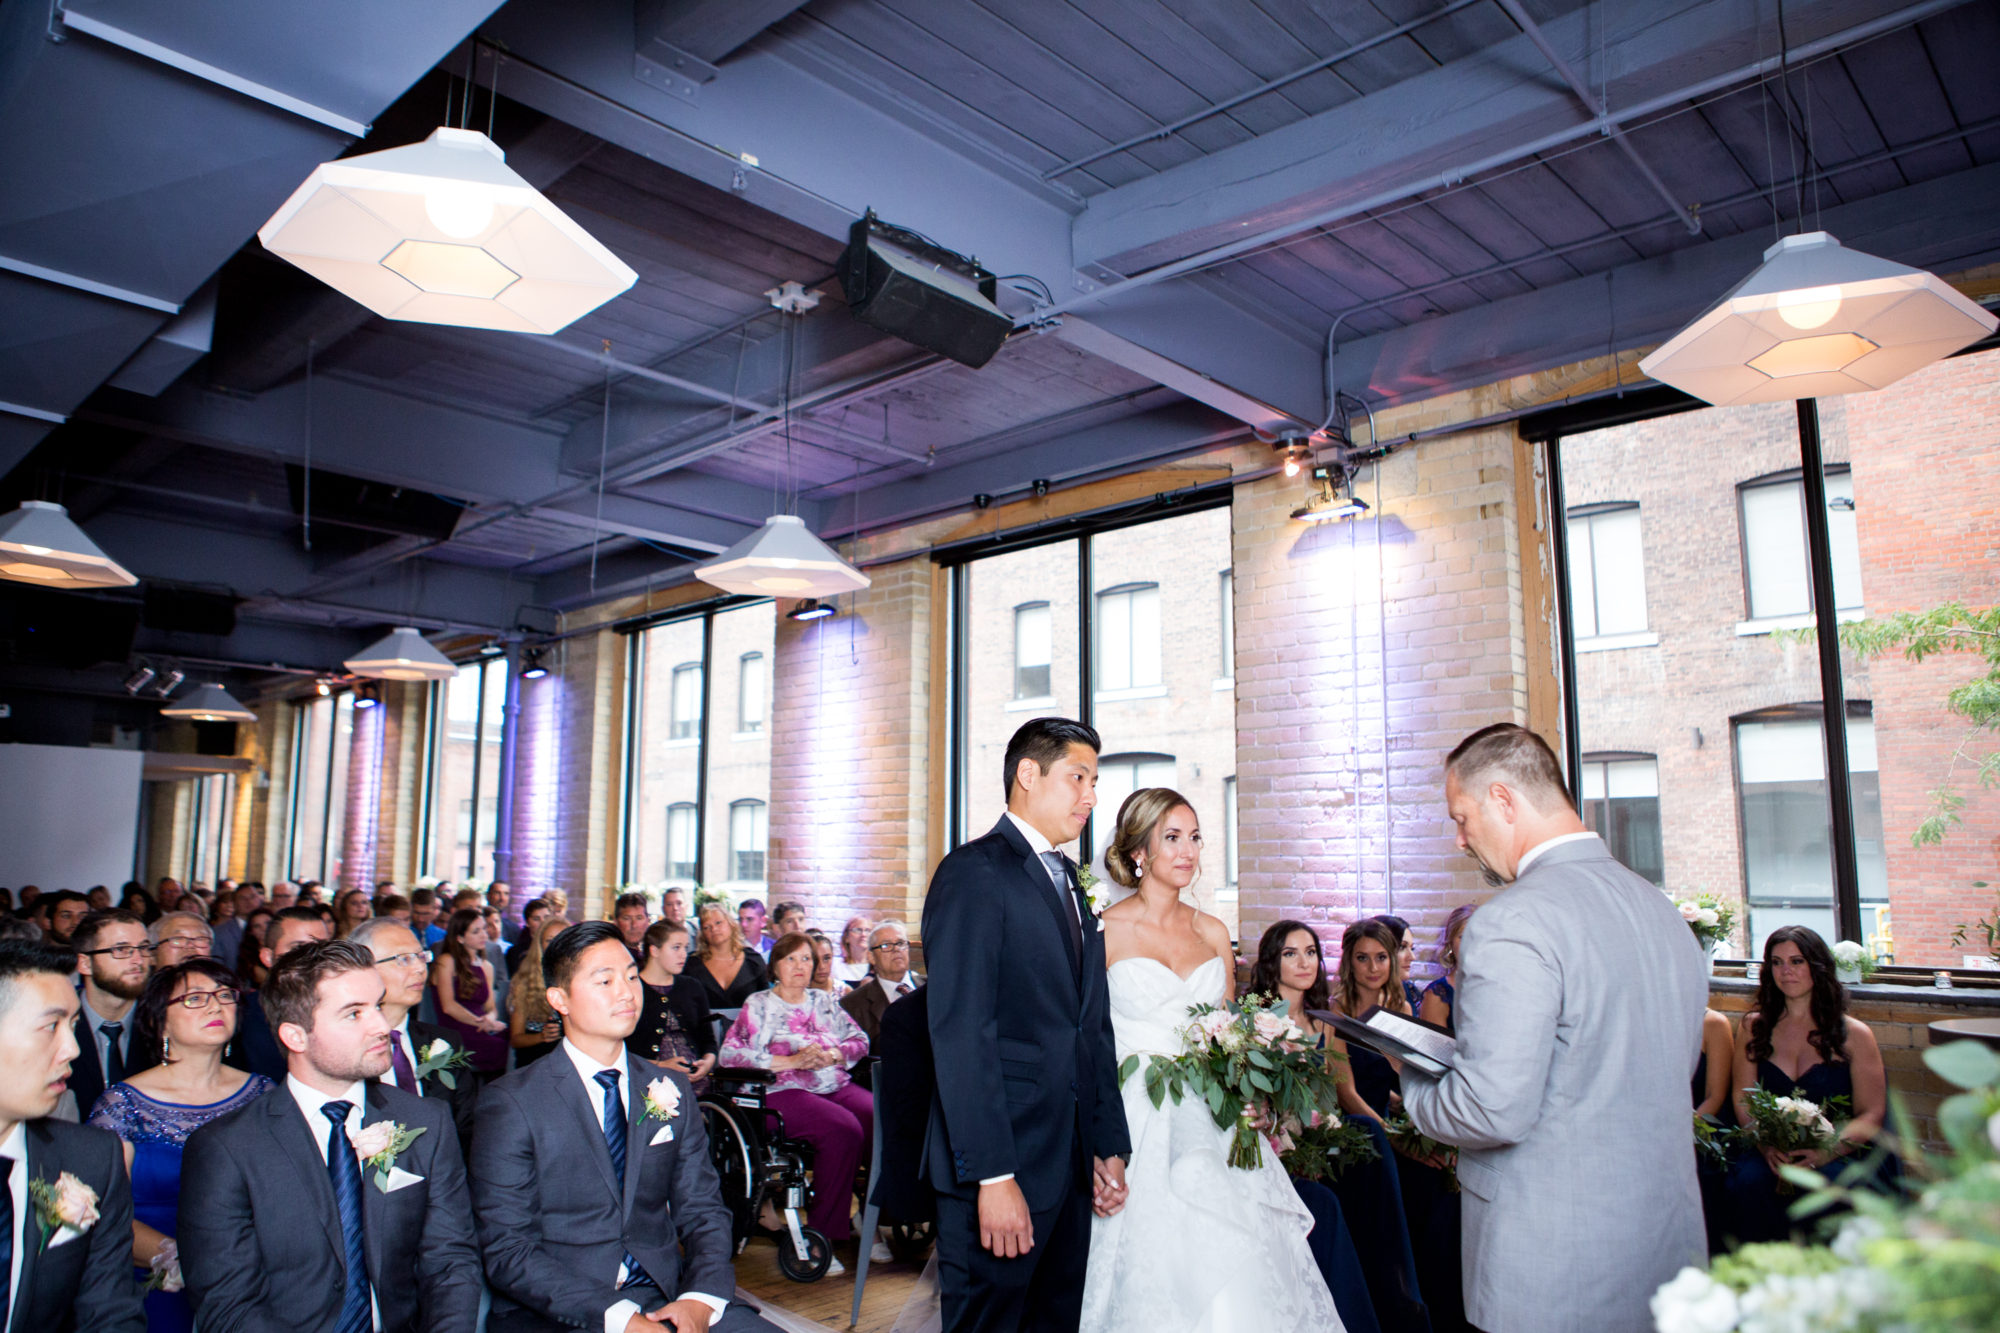 Ceremony Zsuzsi Pal Photography Toronto Wedding 2nd Second Floor Events